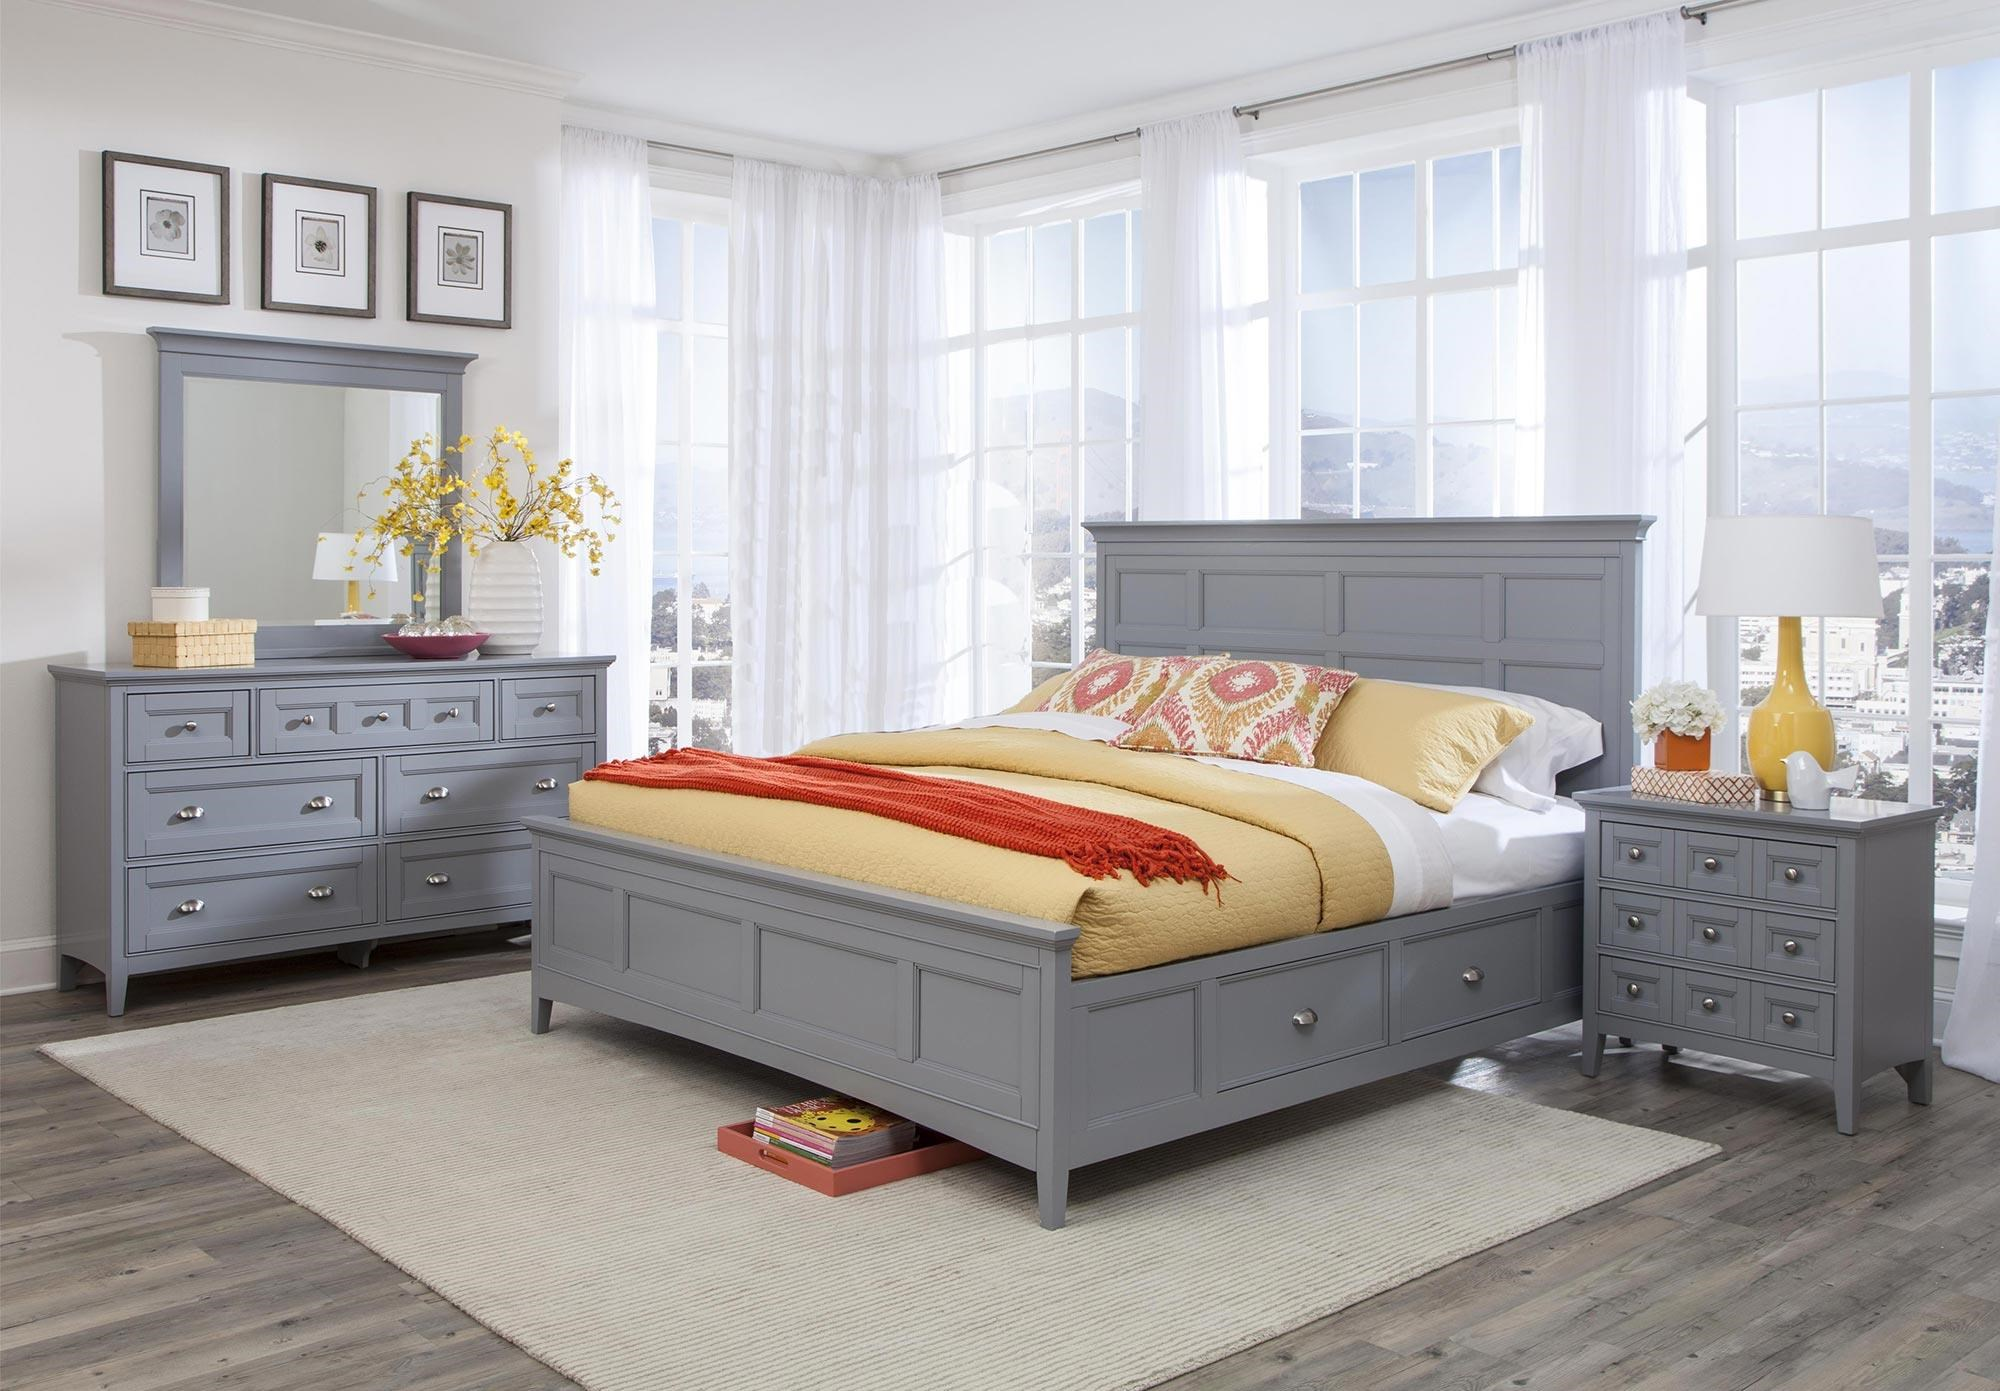 Magnussen Home Mason 4PC Queen Storage Bedroom Set - Item Number: B3572-4PC-QBR